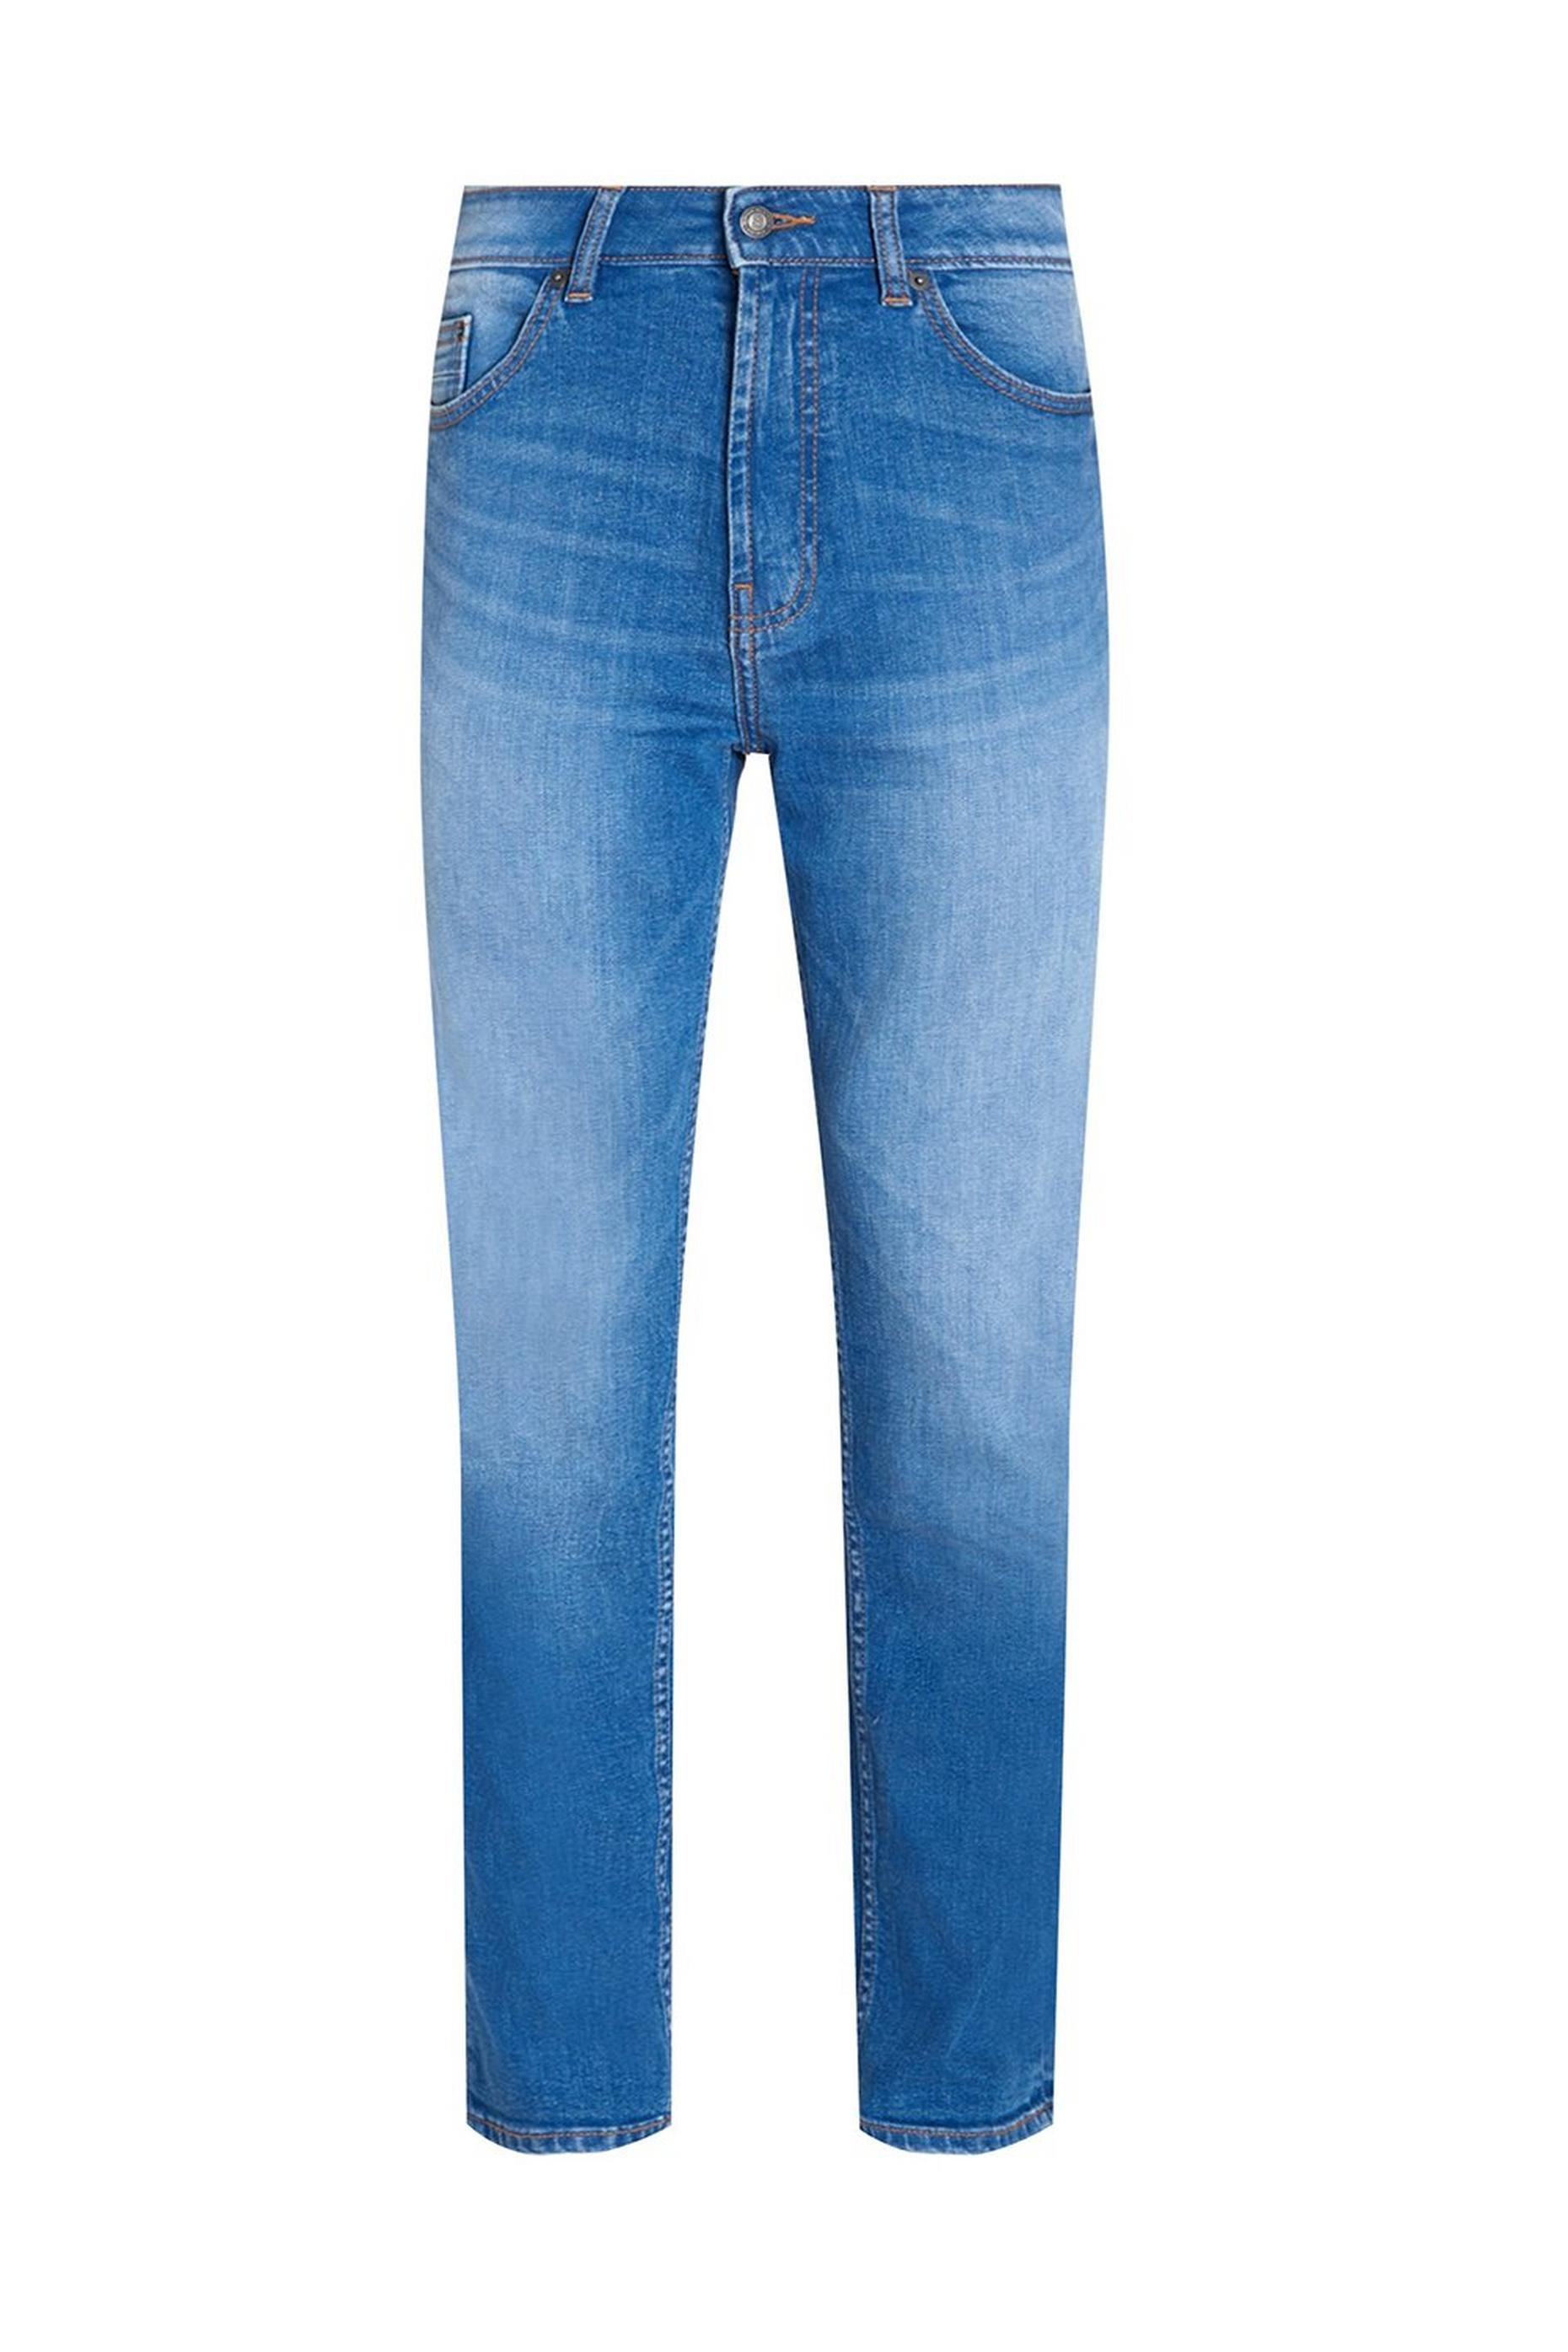 Tapered Hyperblue Organic Jean